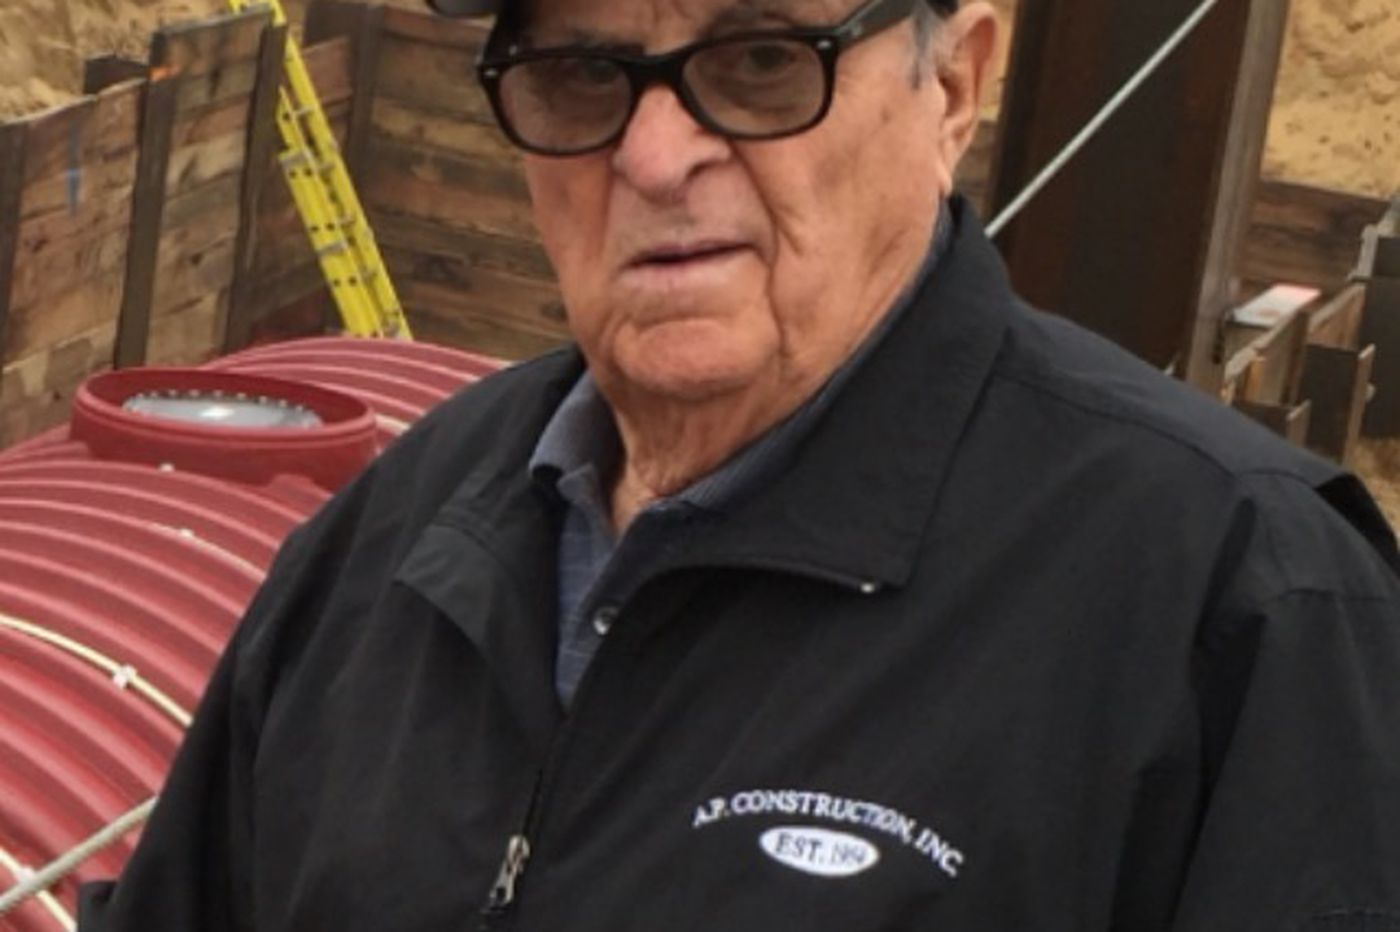 Amedeo Petrongolo Jr., decorated World War II veteran and contractor, dies at 93